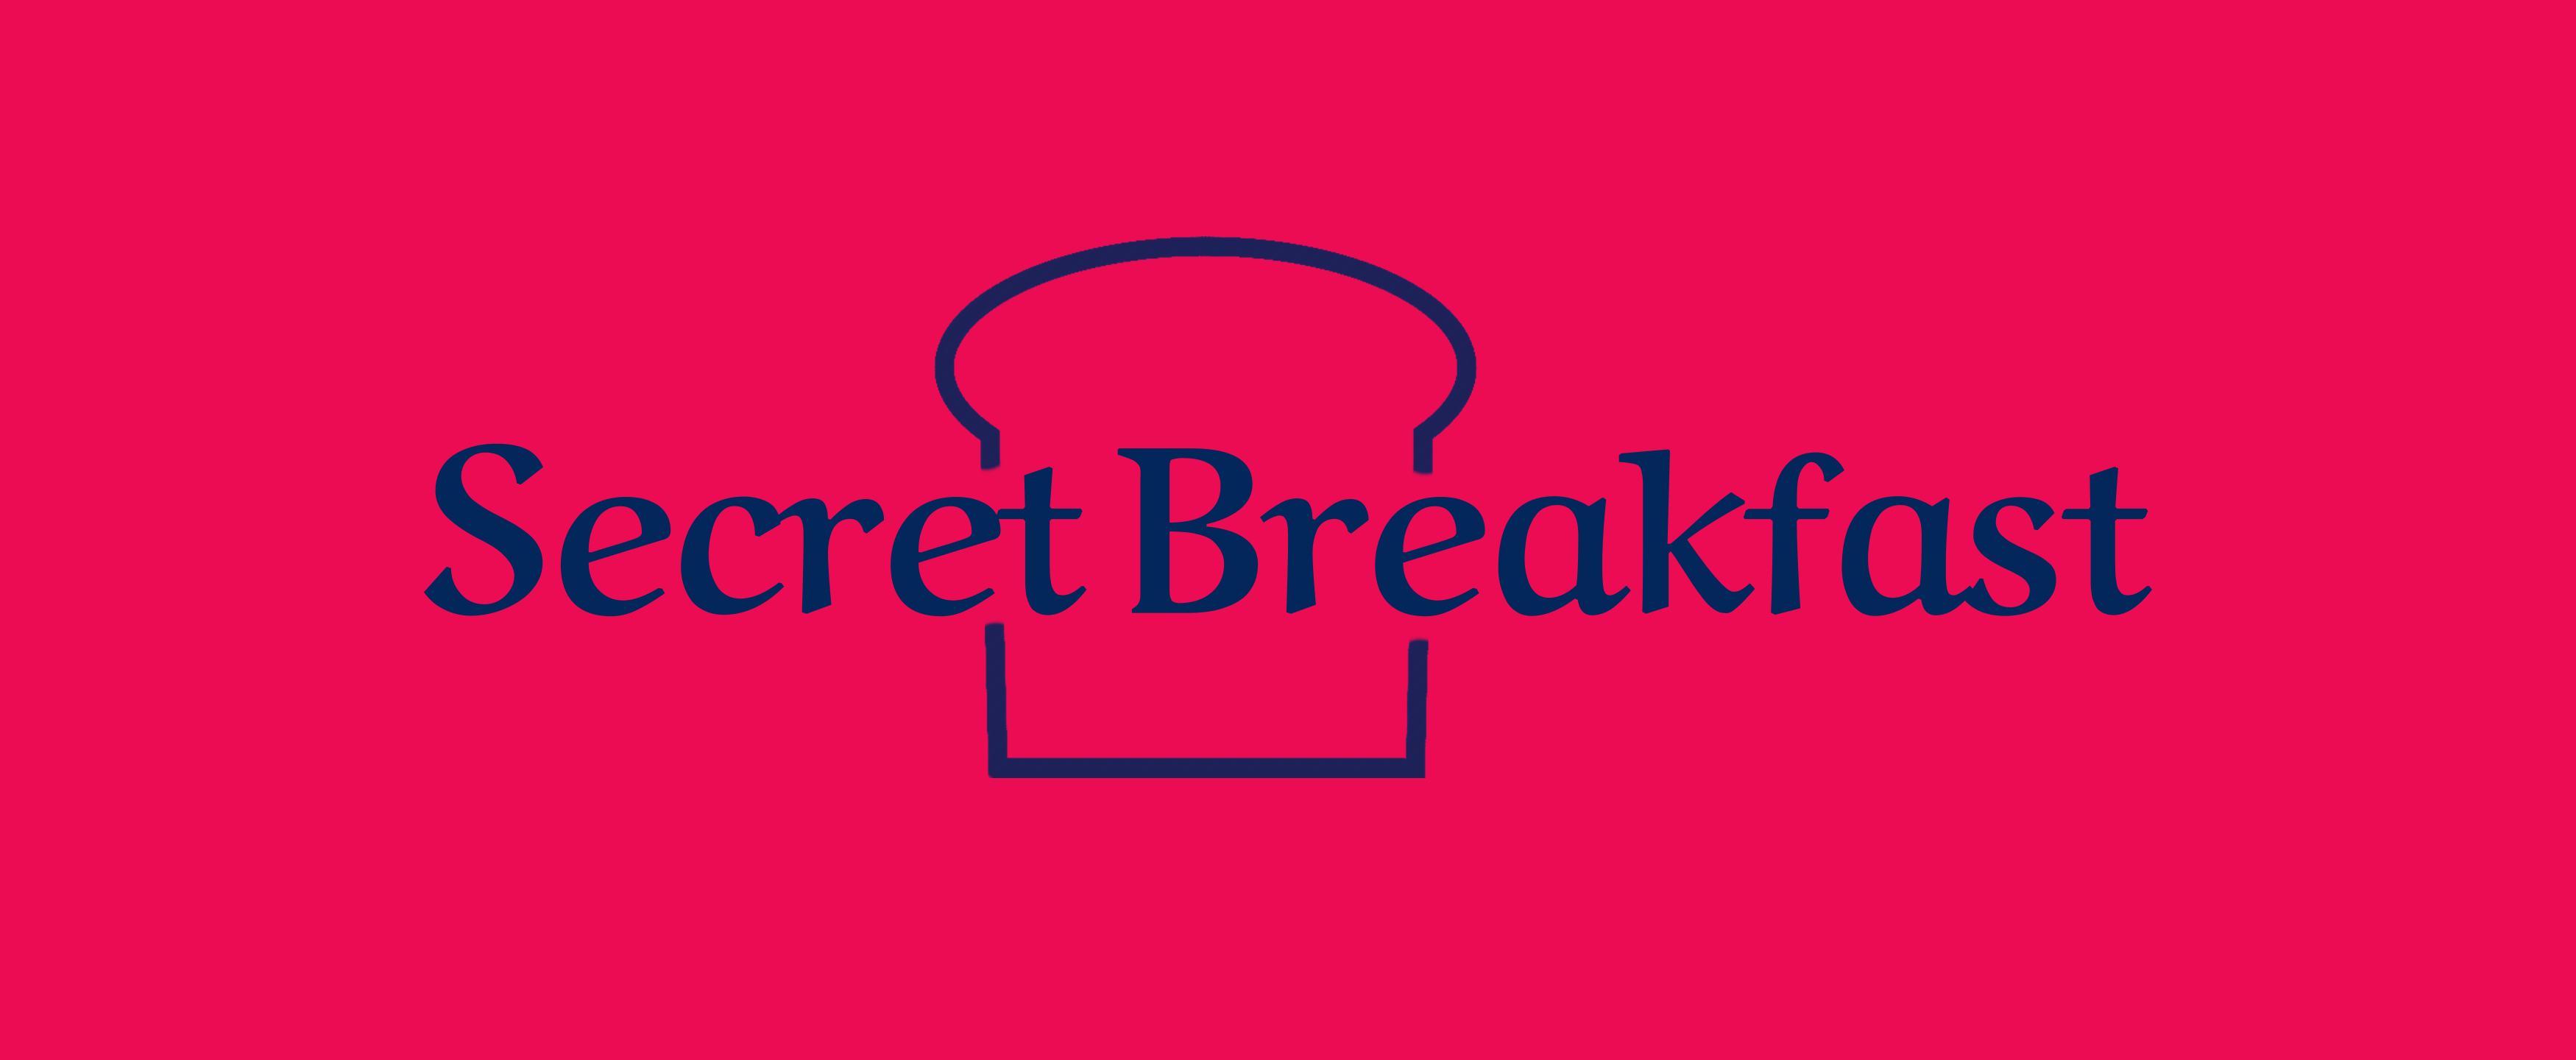 Secret Breakfast is my food newsletter